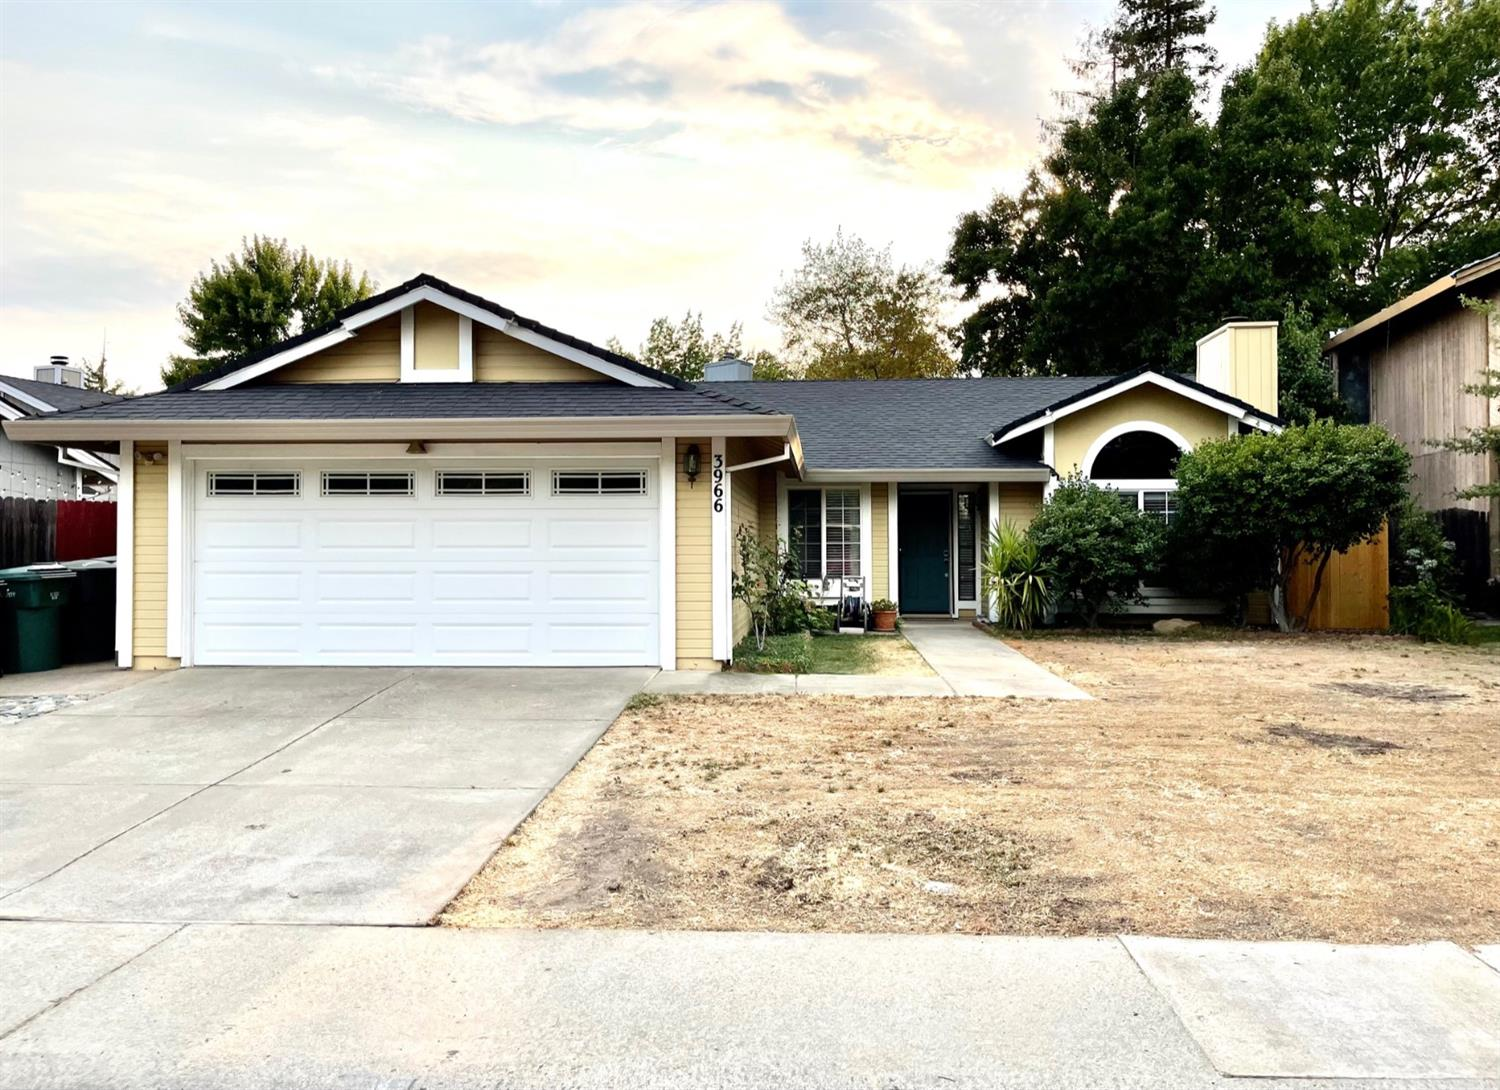 Beautiful, well maintained 3 bed, 2 bath, 2 car garage home on spacious lot.  Property offers open floor plan with cathedral ceilings, updated kitchen cabinets, granite counters, laminate flooring, fresh interior and exterior paint, updated bathrooms, new HVAC, water heater, newer roof.  Refrigerator, washer, dryer are included. Conveniently located to schools, shopping, park. Must see!!!